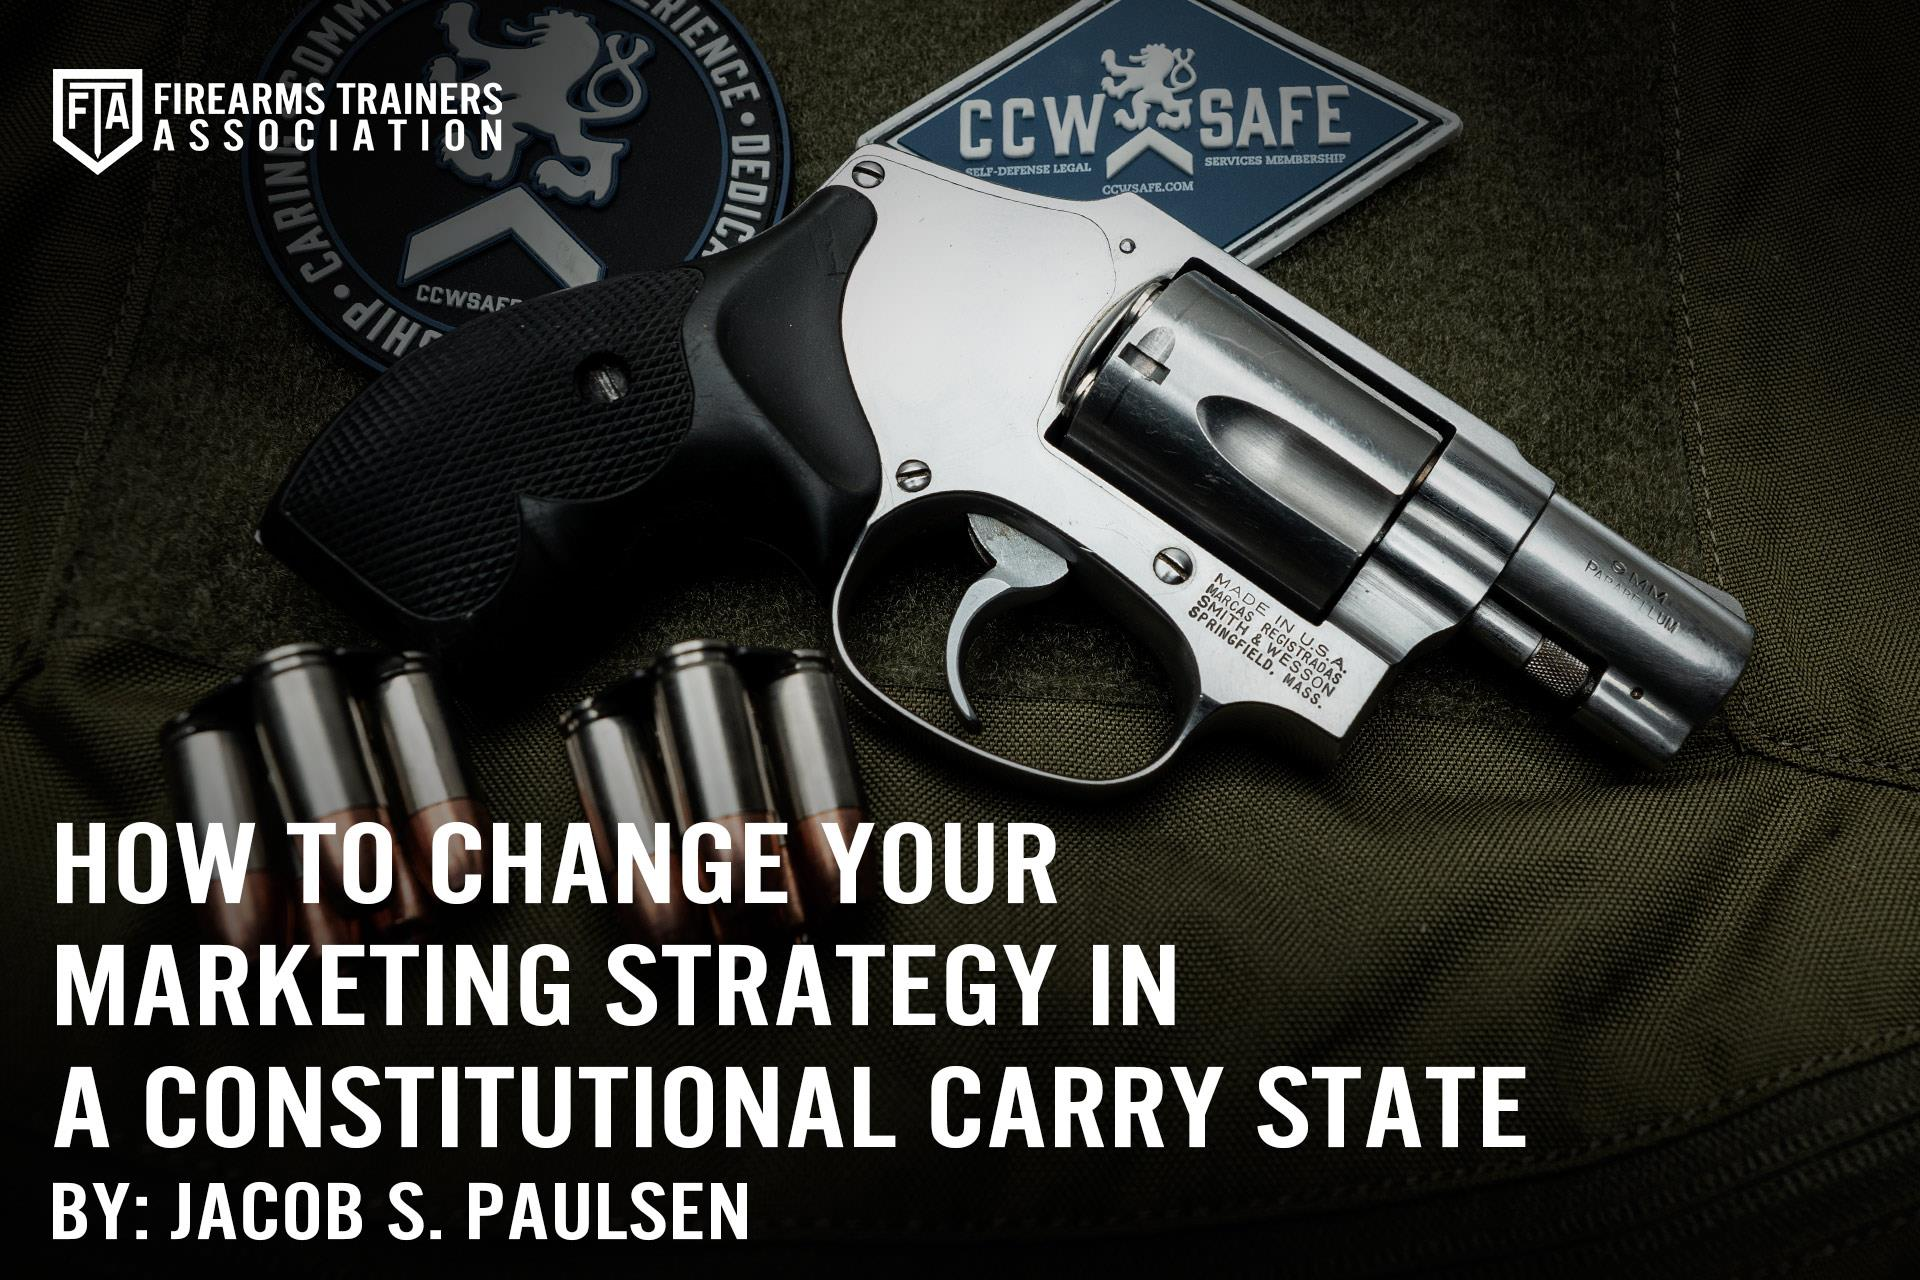 HOW TO CHANGE YOUR MARKETING STRATEGY IN A CONSTITUTIONAL CARRY STATE